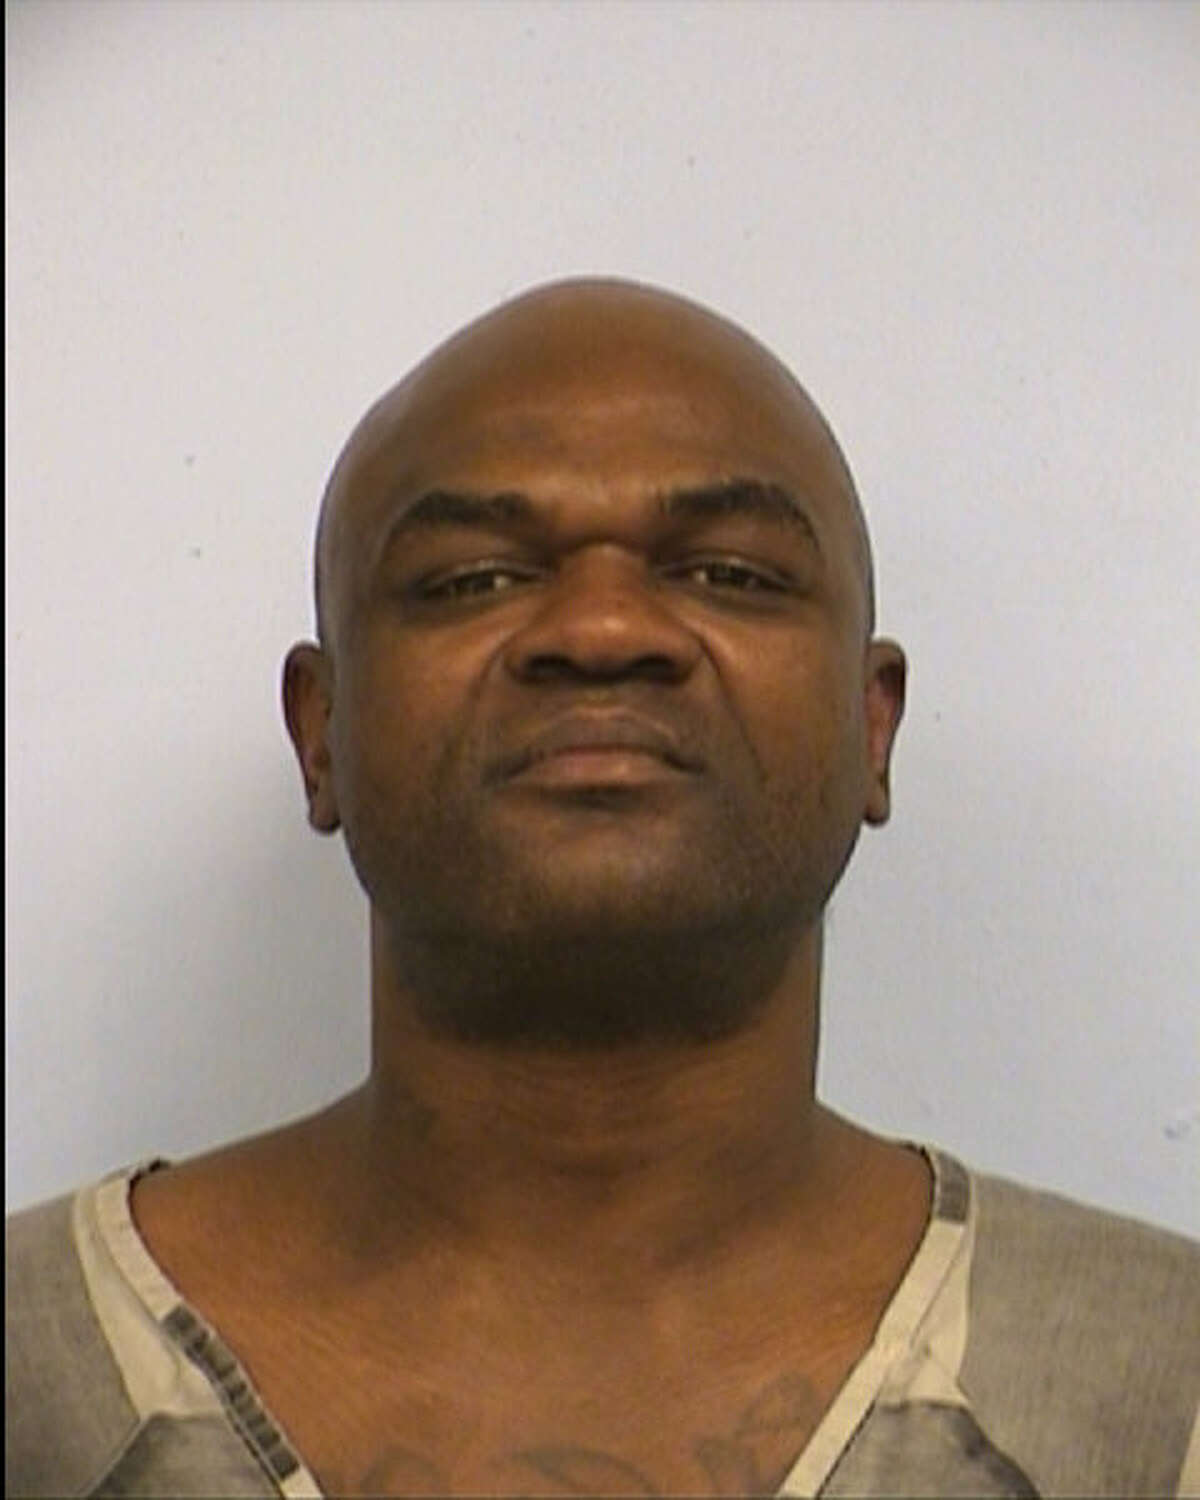 James Cordell Avery could face up to two years in prison for allegedly stealing $2,000 worth of brisket from at least 19 H-E-B stores. Avery was arrested Sunday and charged with theft between $1,500 and $20,000, a state jail felony punishable by up to two years in prison.